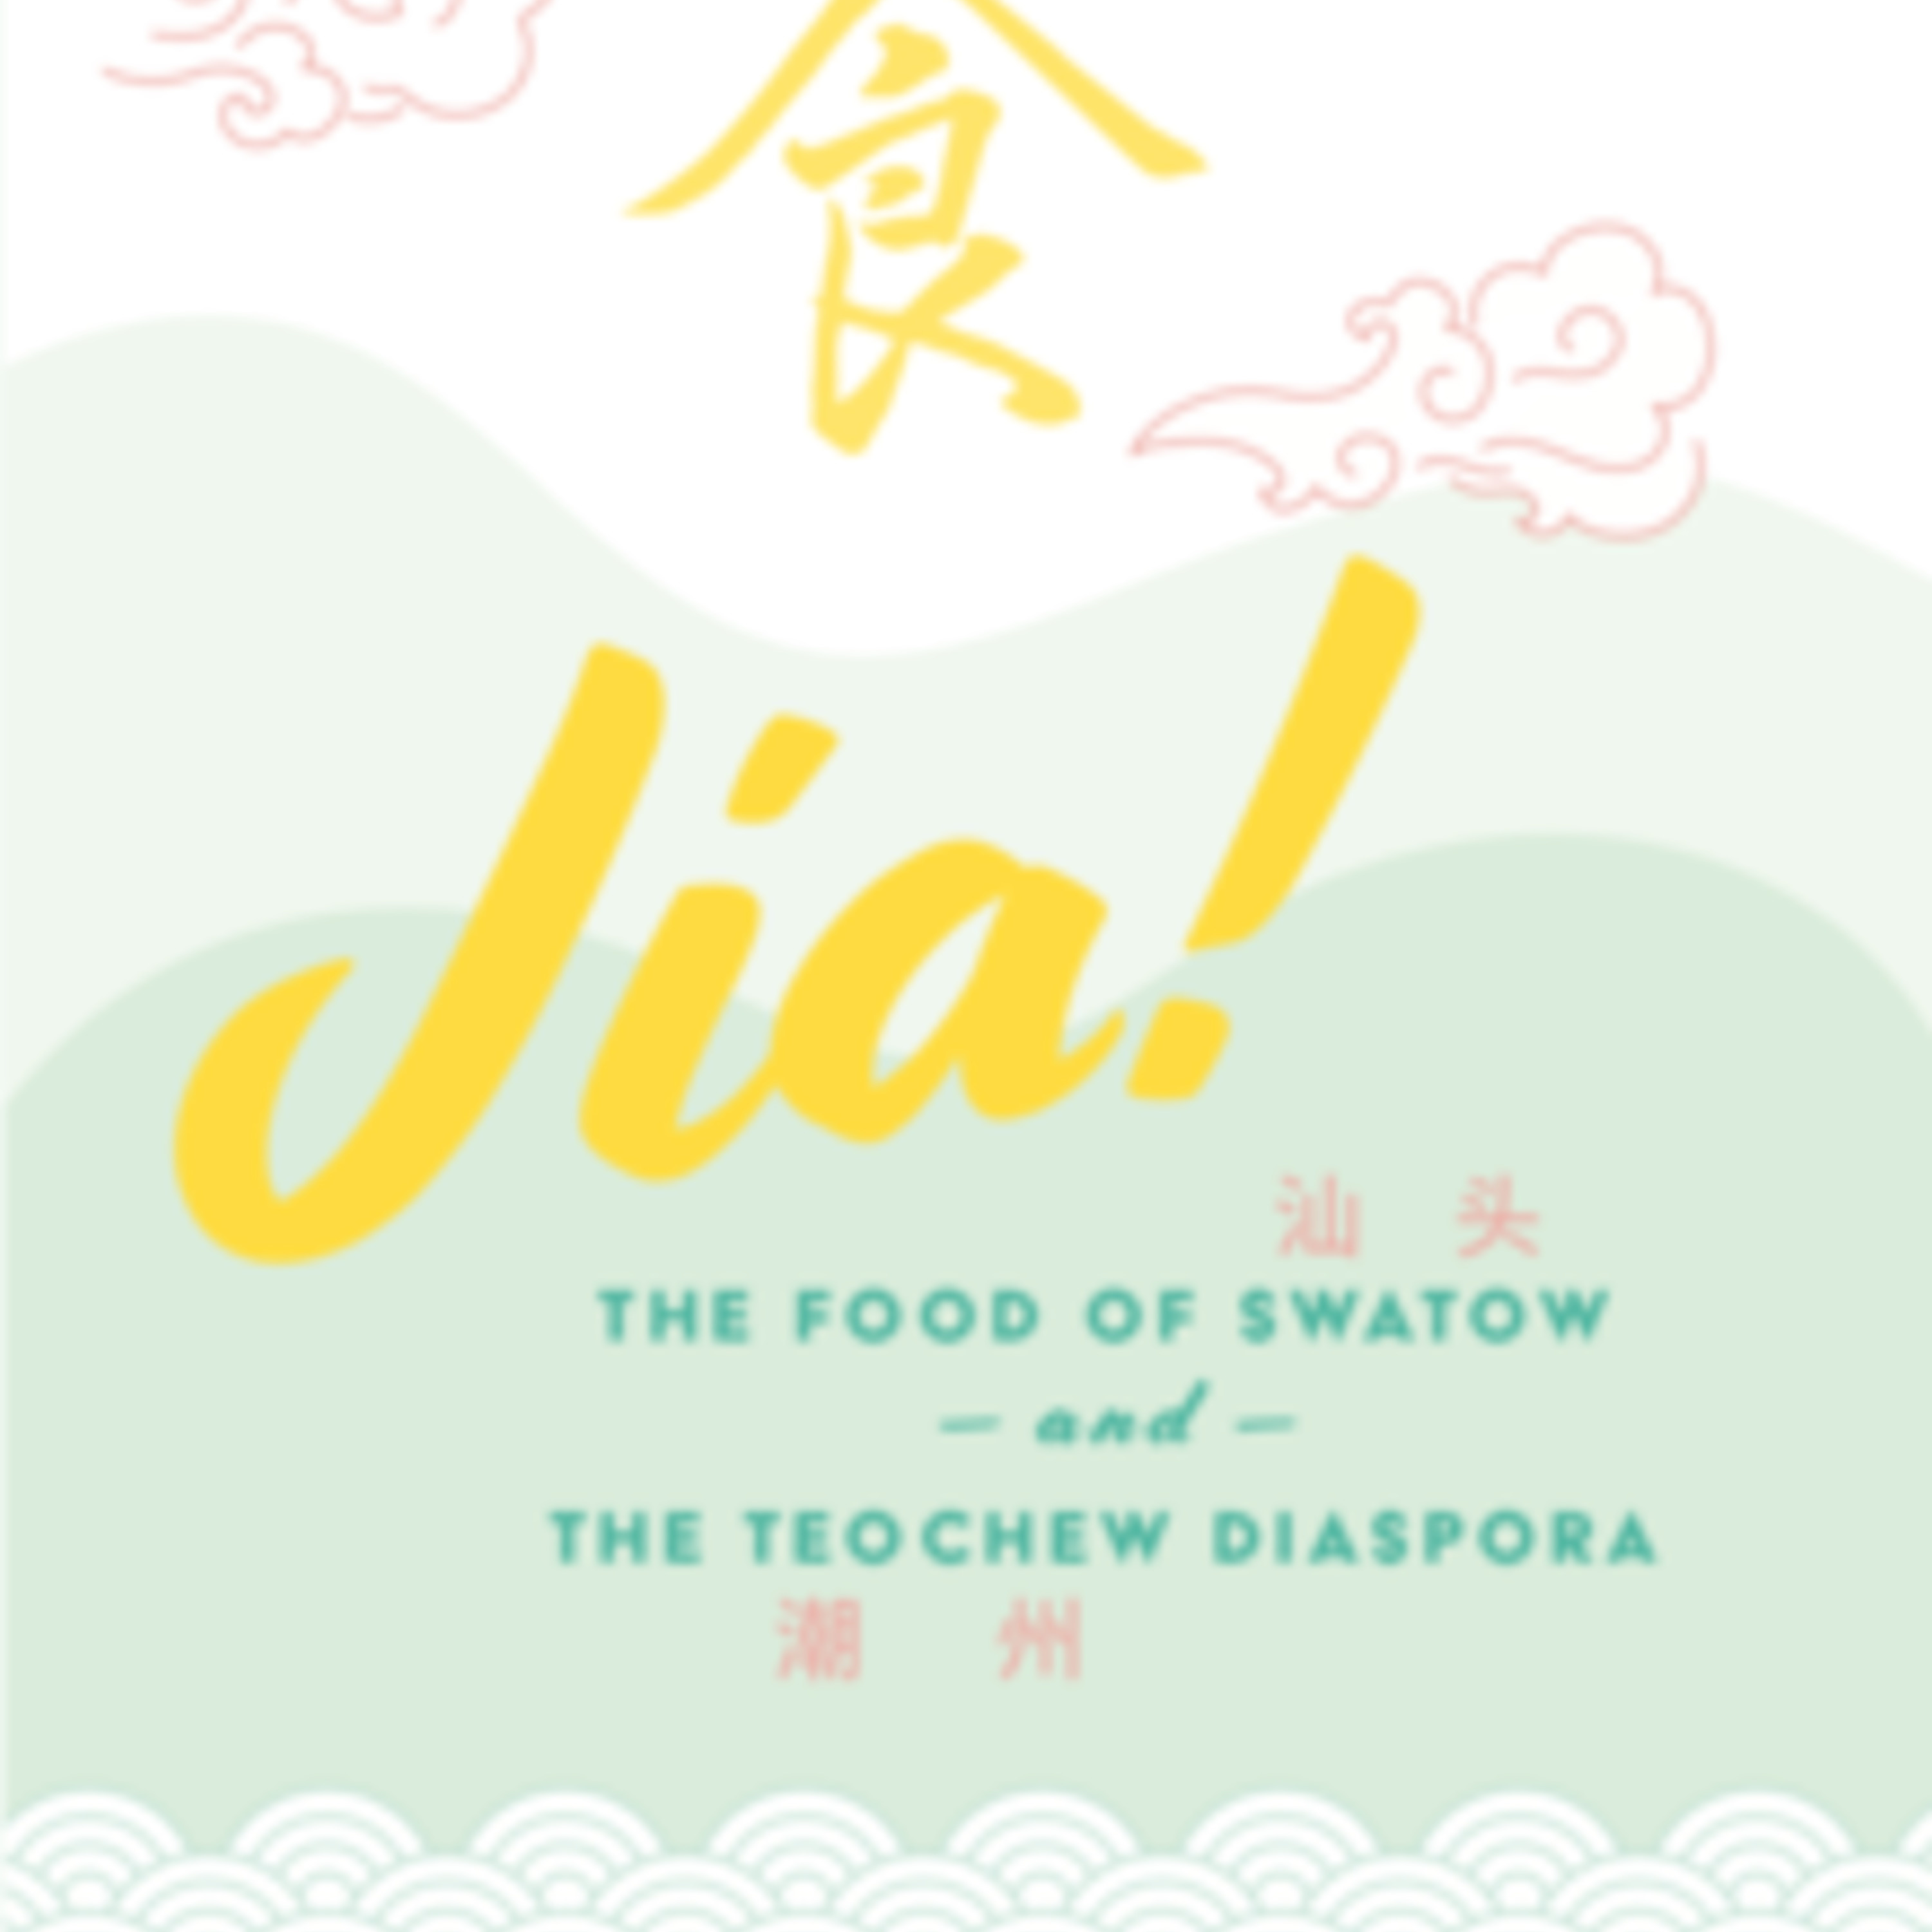 Episode 369: The Food of Swatow and the Teochew Diaspora